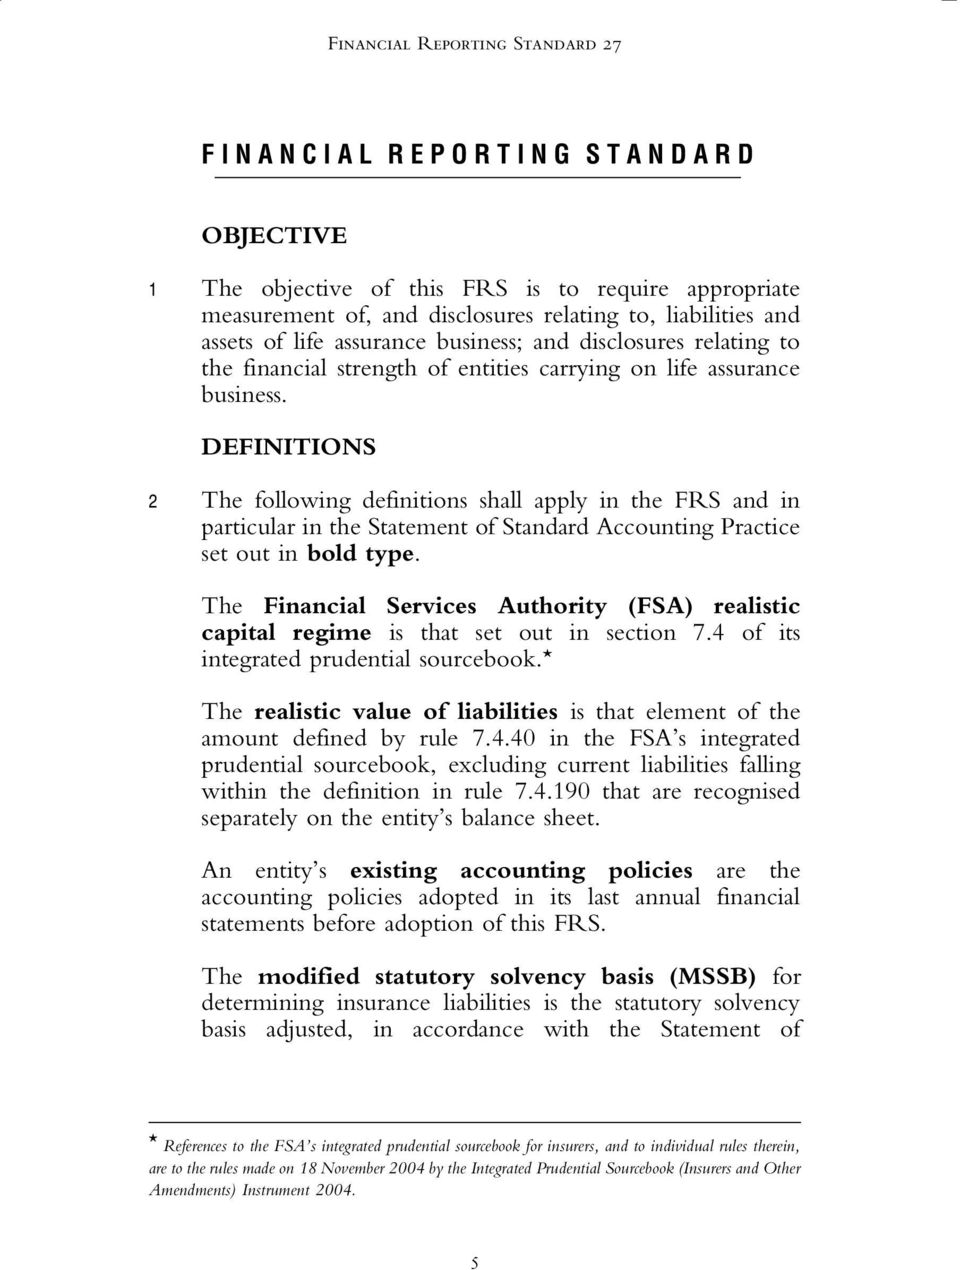 DEFINITIONS 2 The following definitions shall apply in the FRS and in particular in the Statement of Standard Accounting Practice set out in bold type.